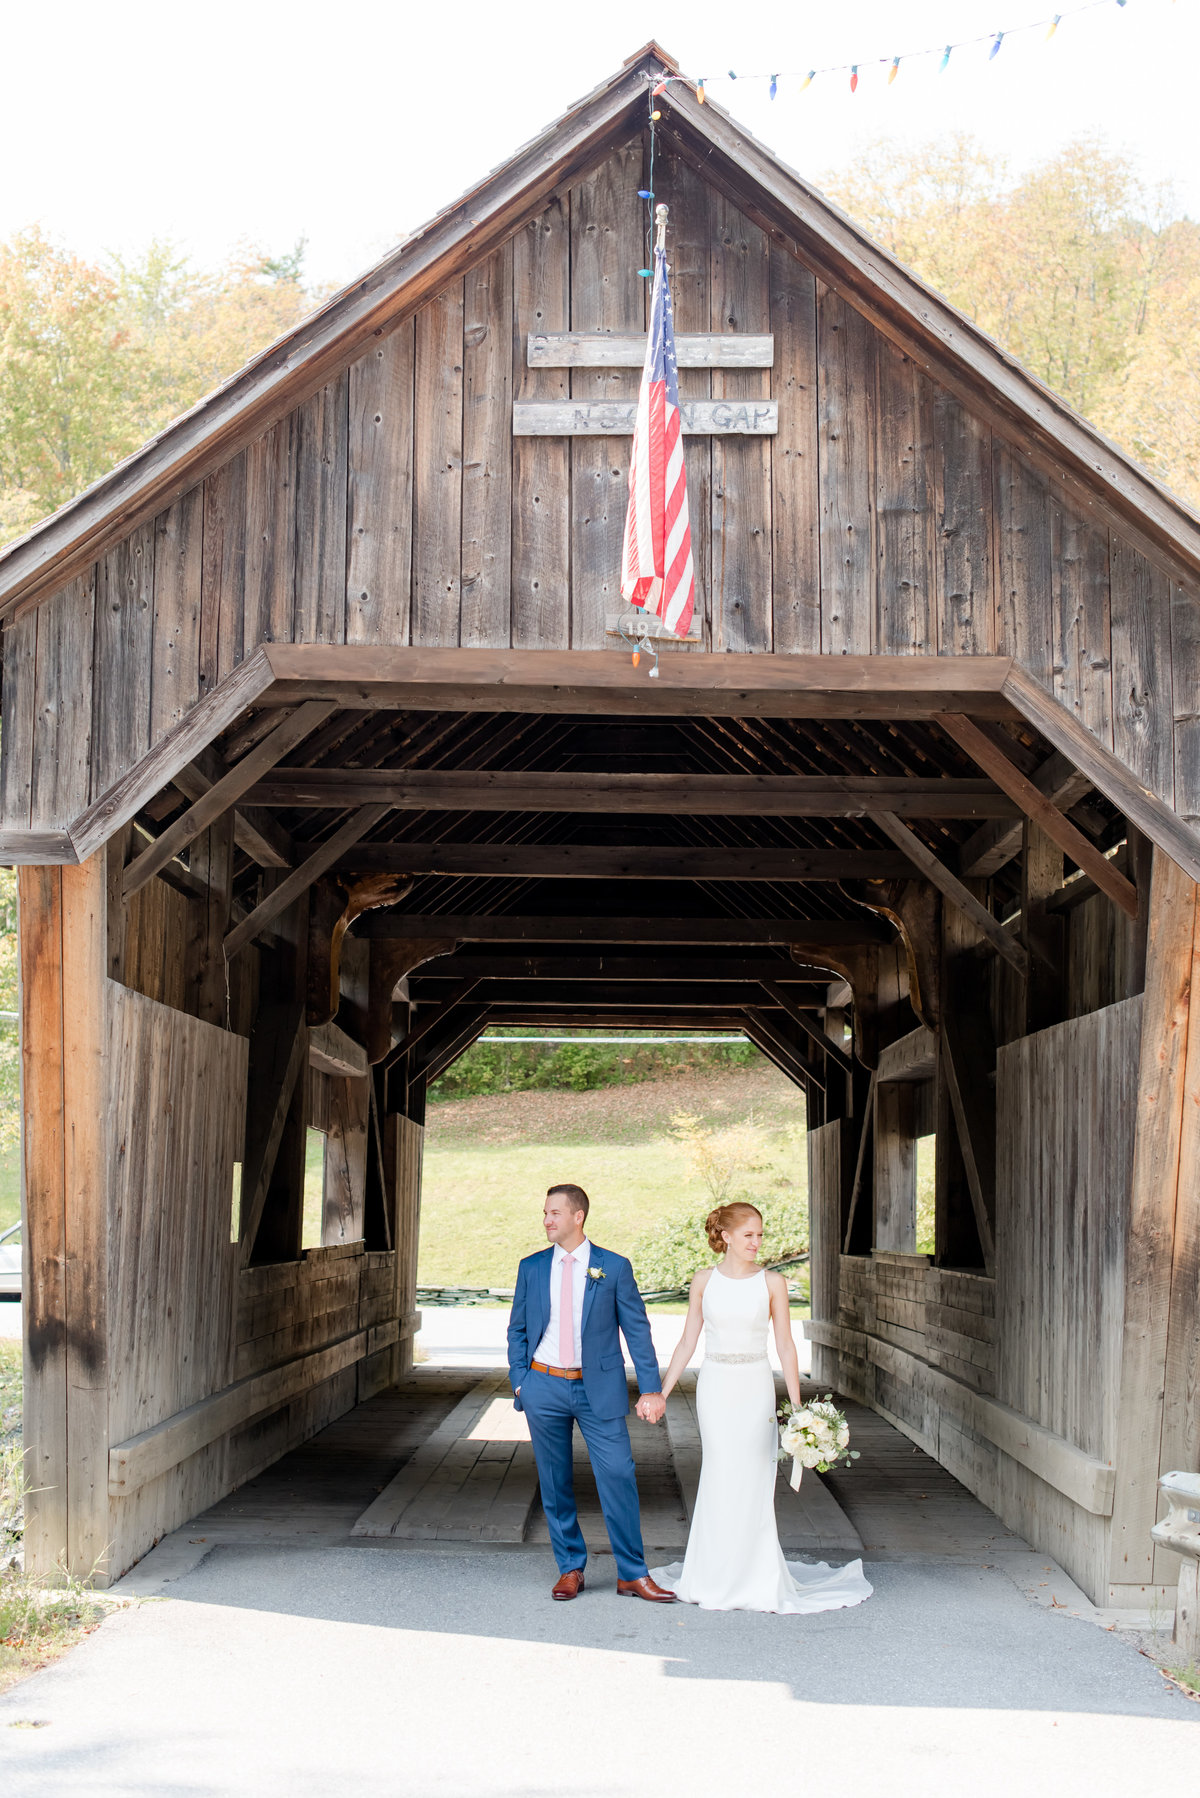 Sugarbush Vermont Wedding-Vermont Wedding Photographer-  Ashley and Joe Wedding 203578-15